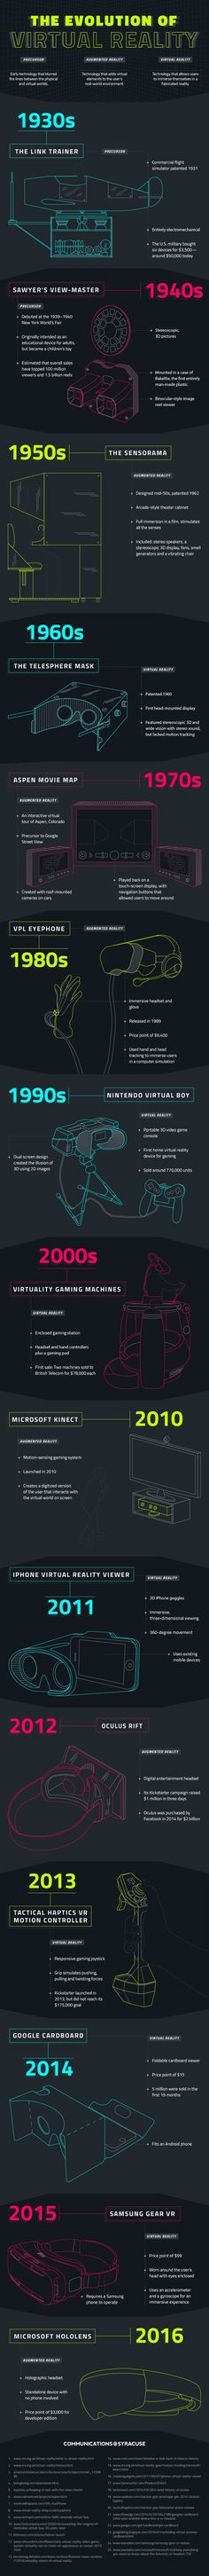 A timeline of the evolution of virtual reality, from the 1930s to present.